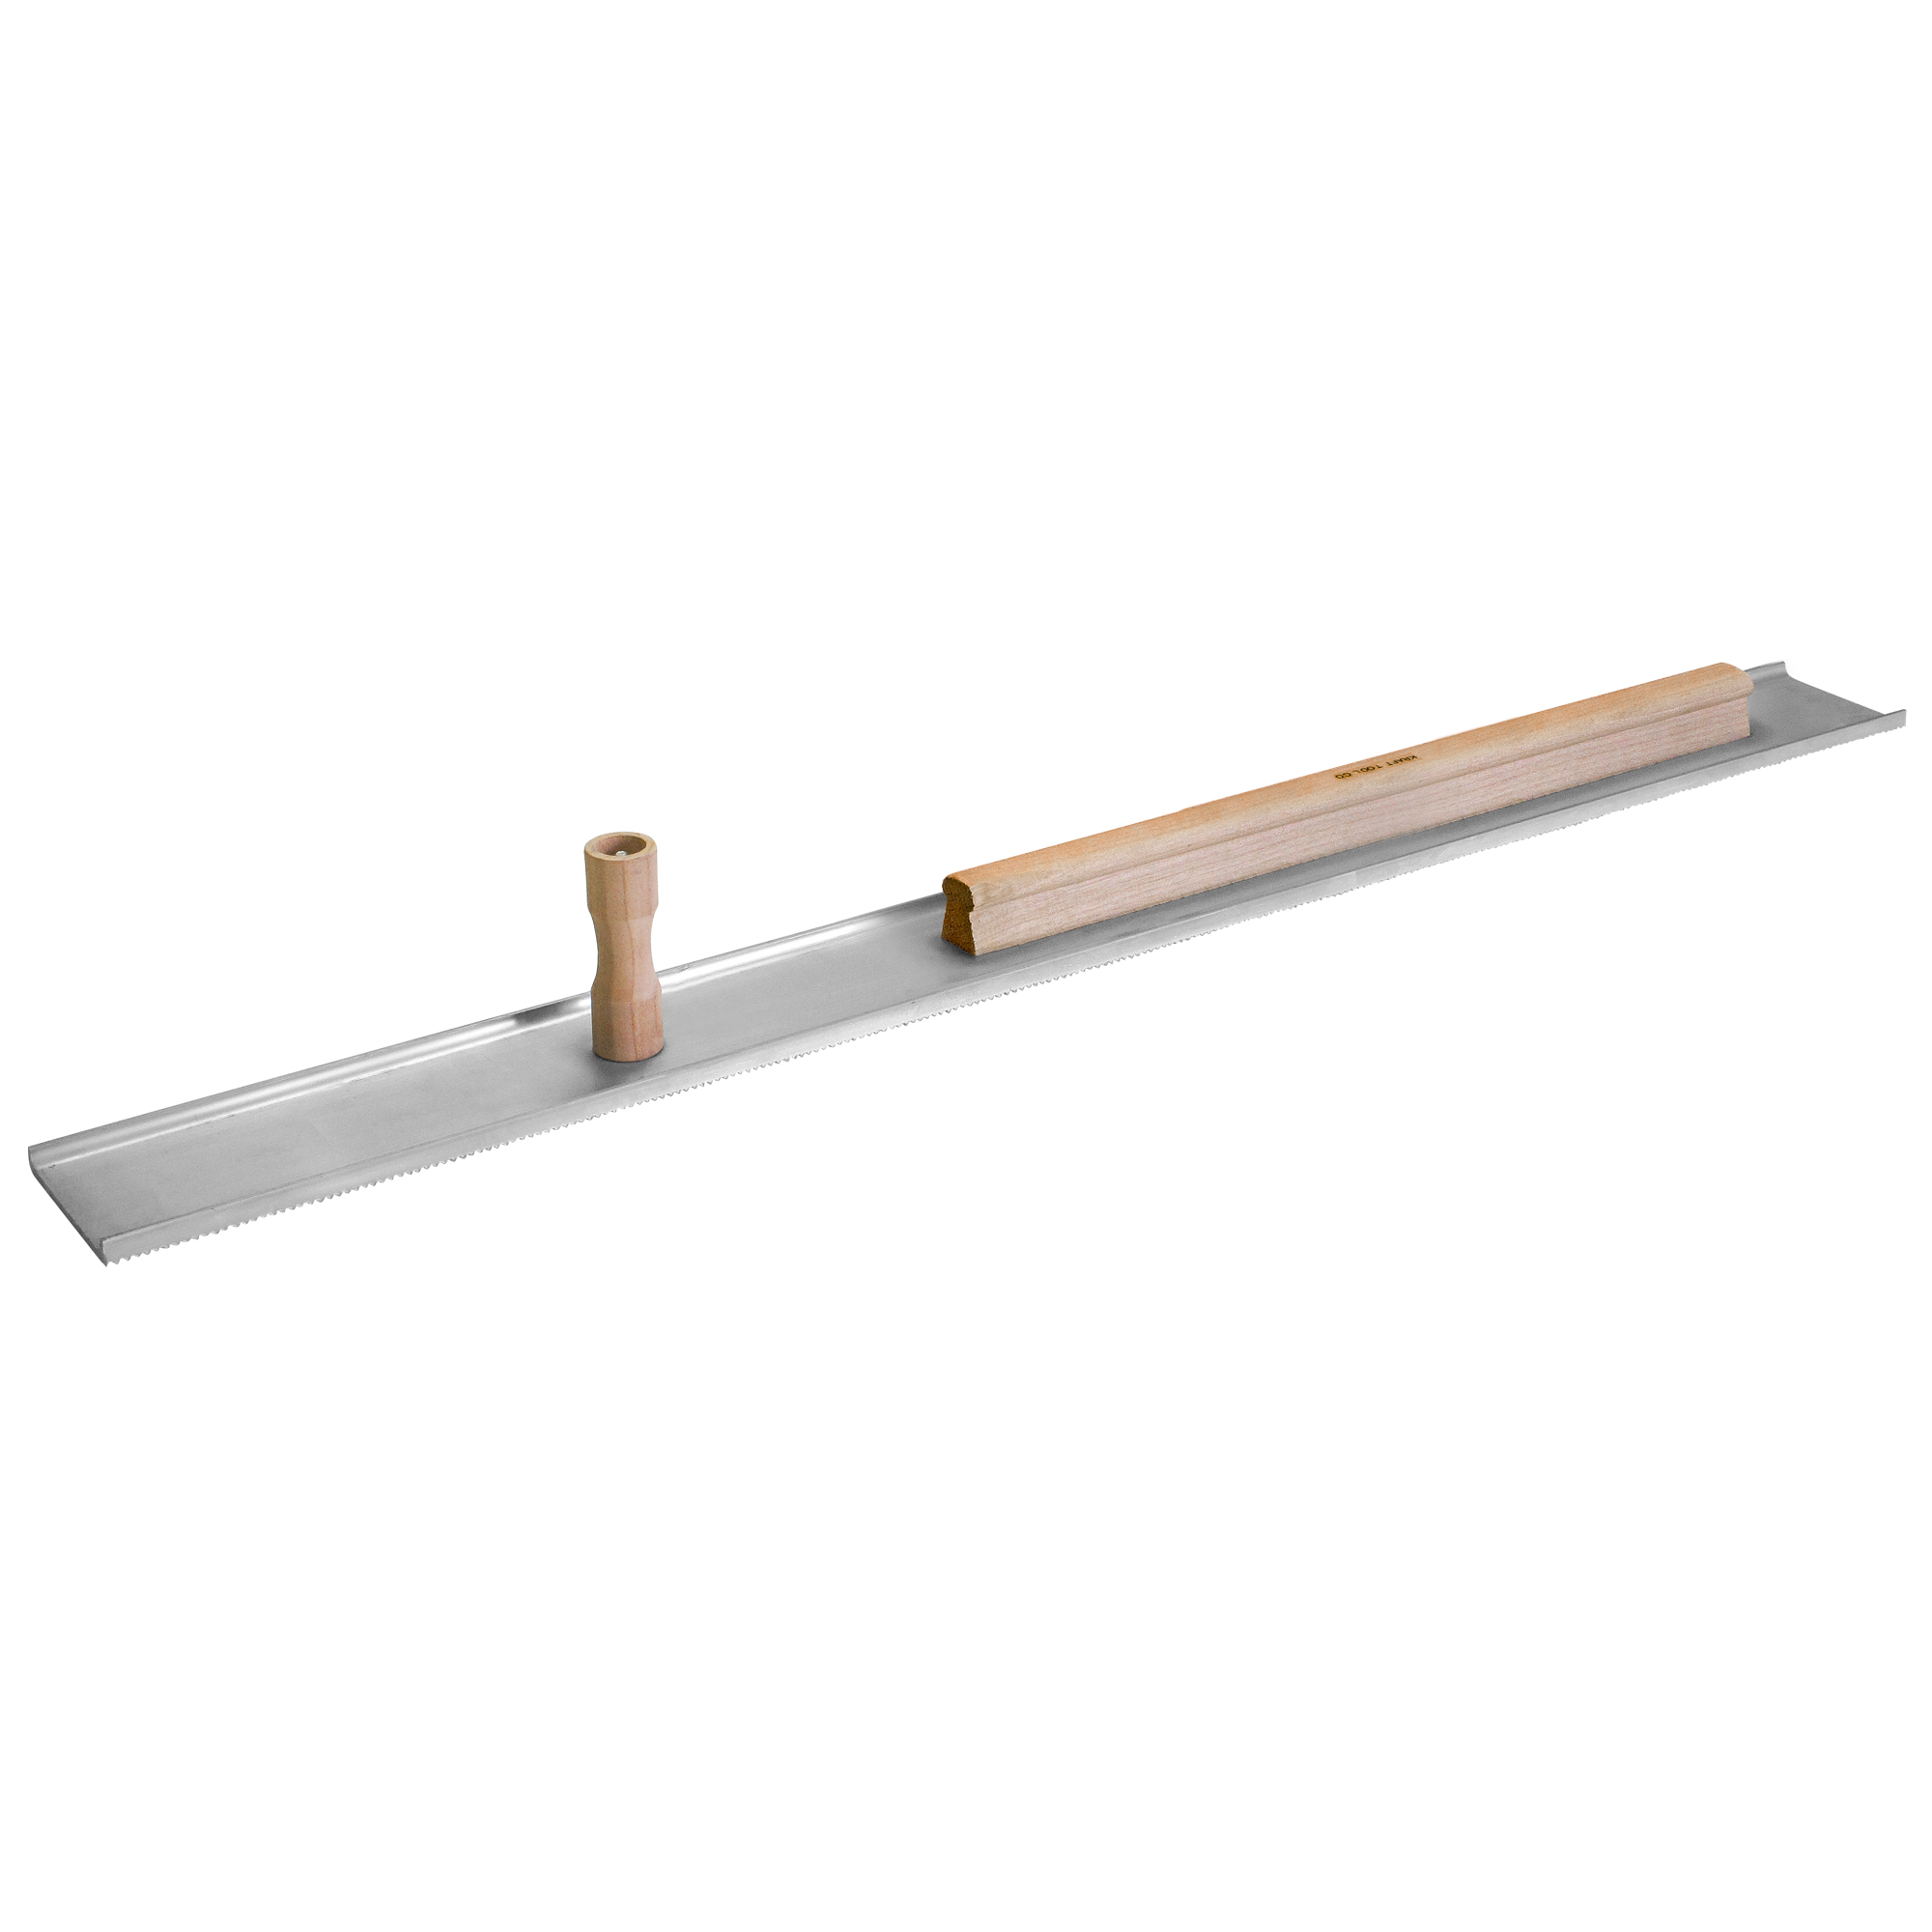 42inch Smooth Edge Magnesium Darby With 1 Knob And A 24inch Rib Handle - Pl400-24 - Measuring & Sensors Tools Drywall Plastering Darbies PL400-24